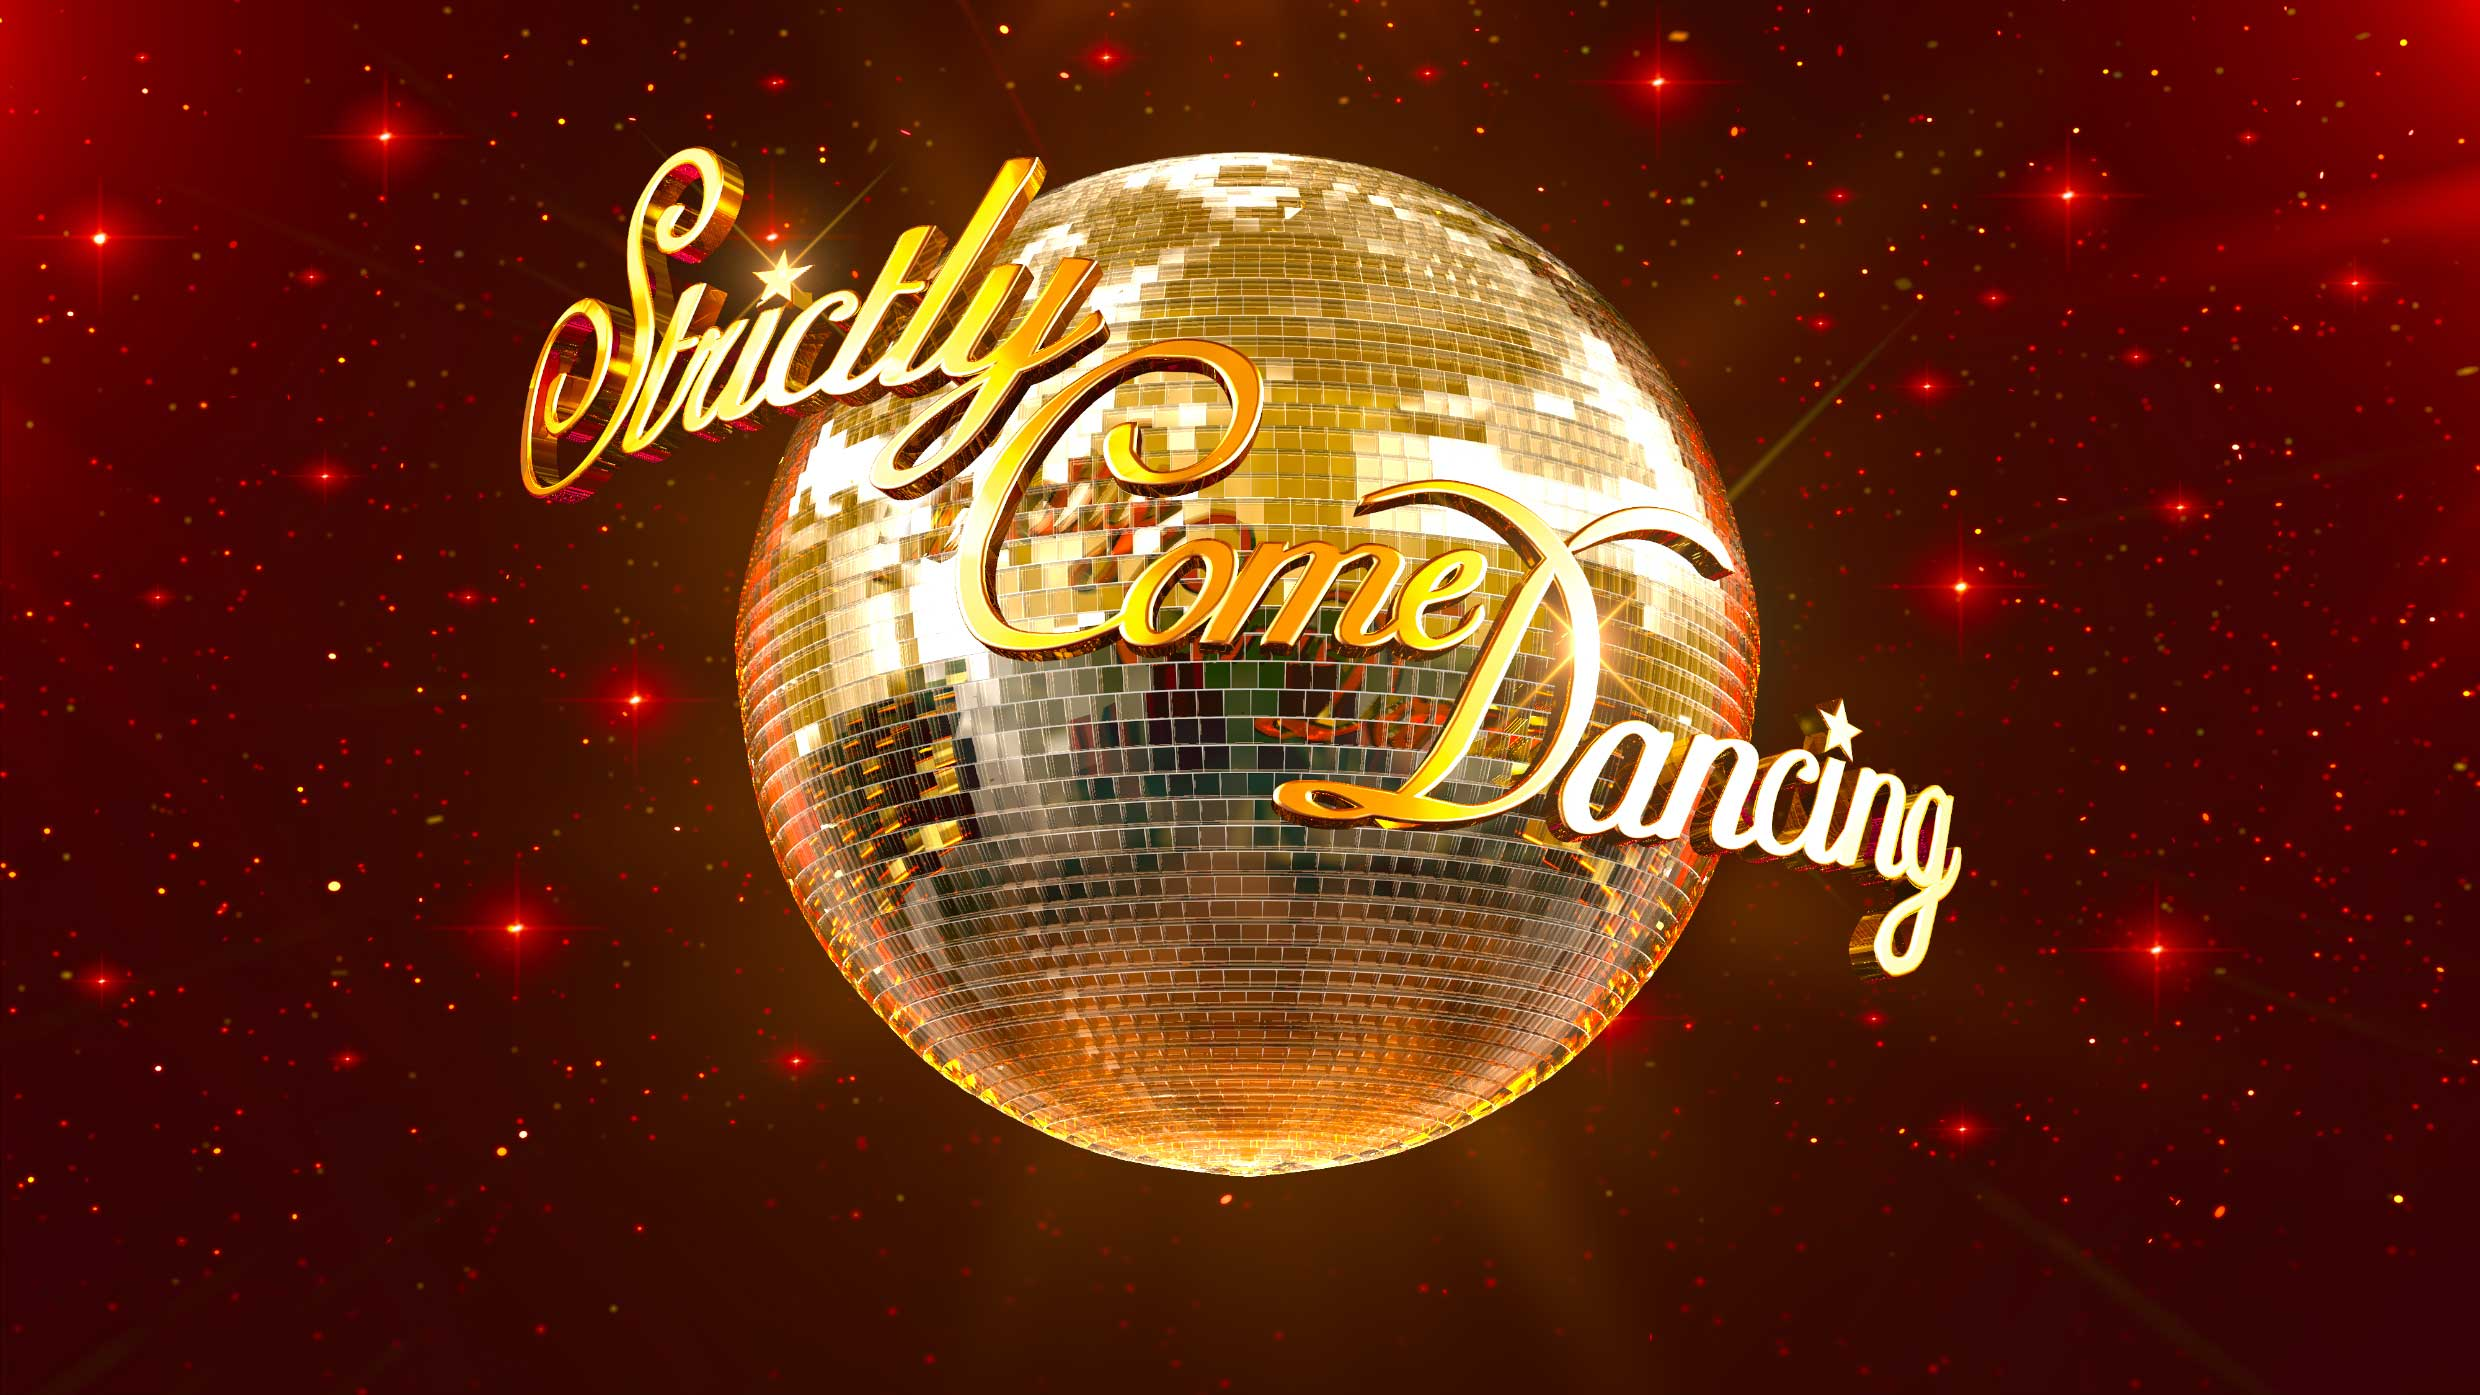 BBC-strictly-come-dancing.jpg